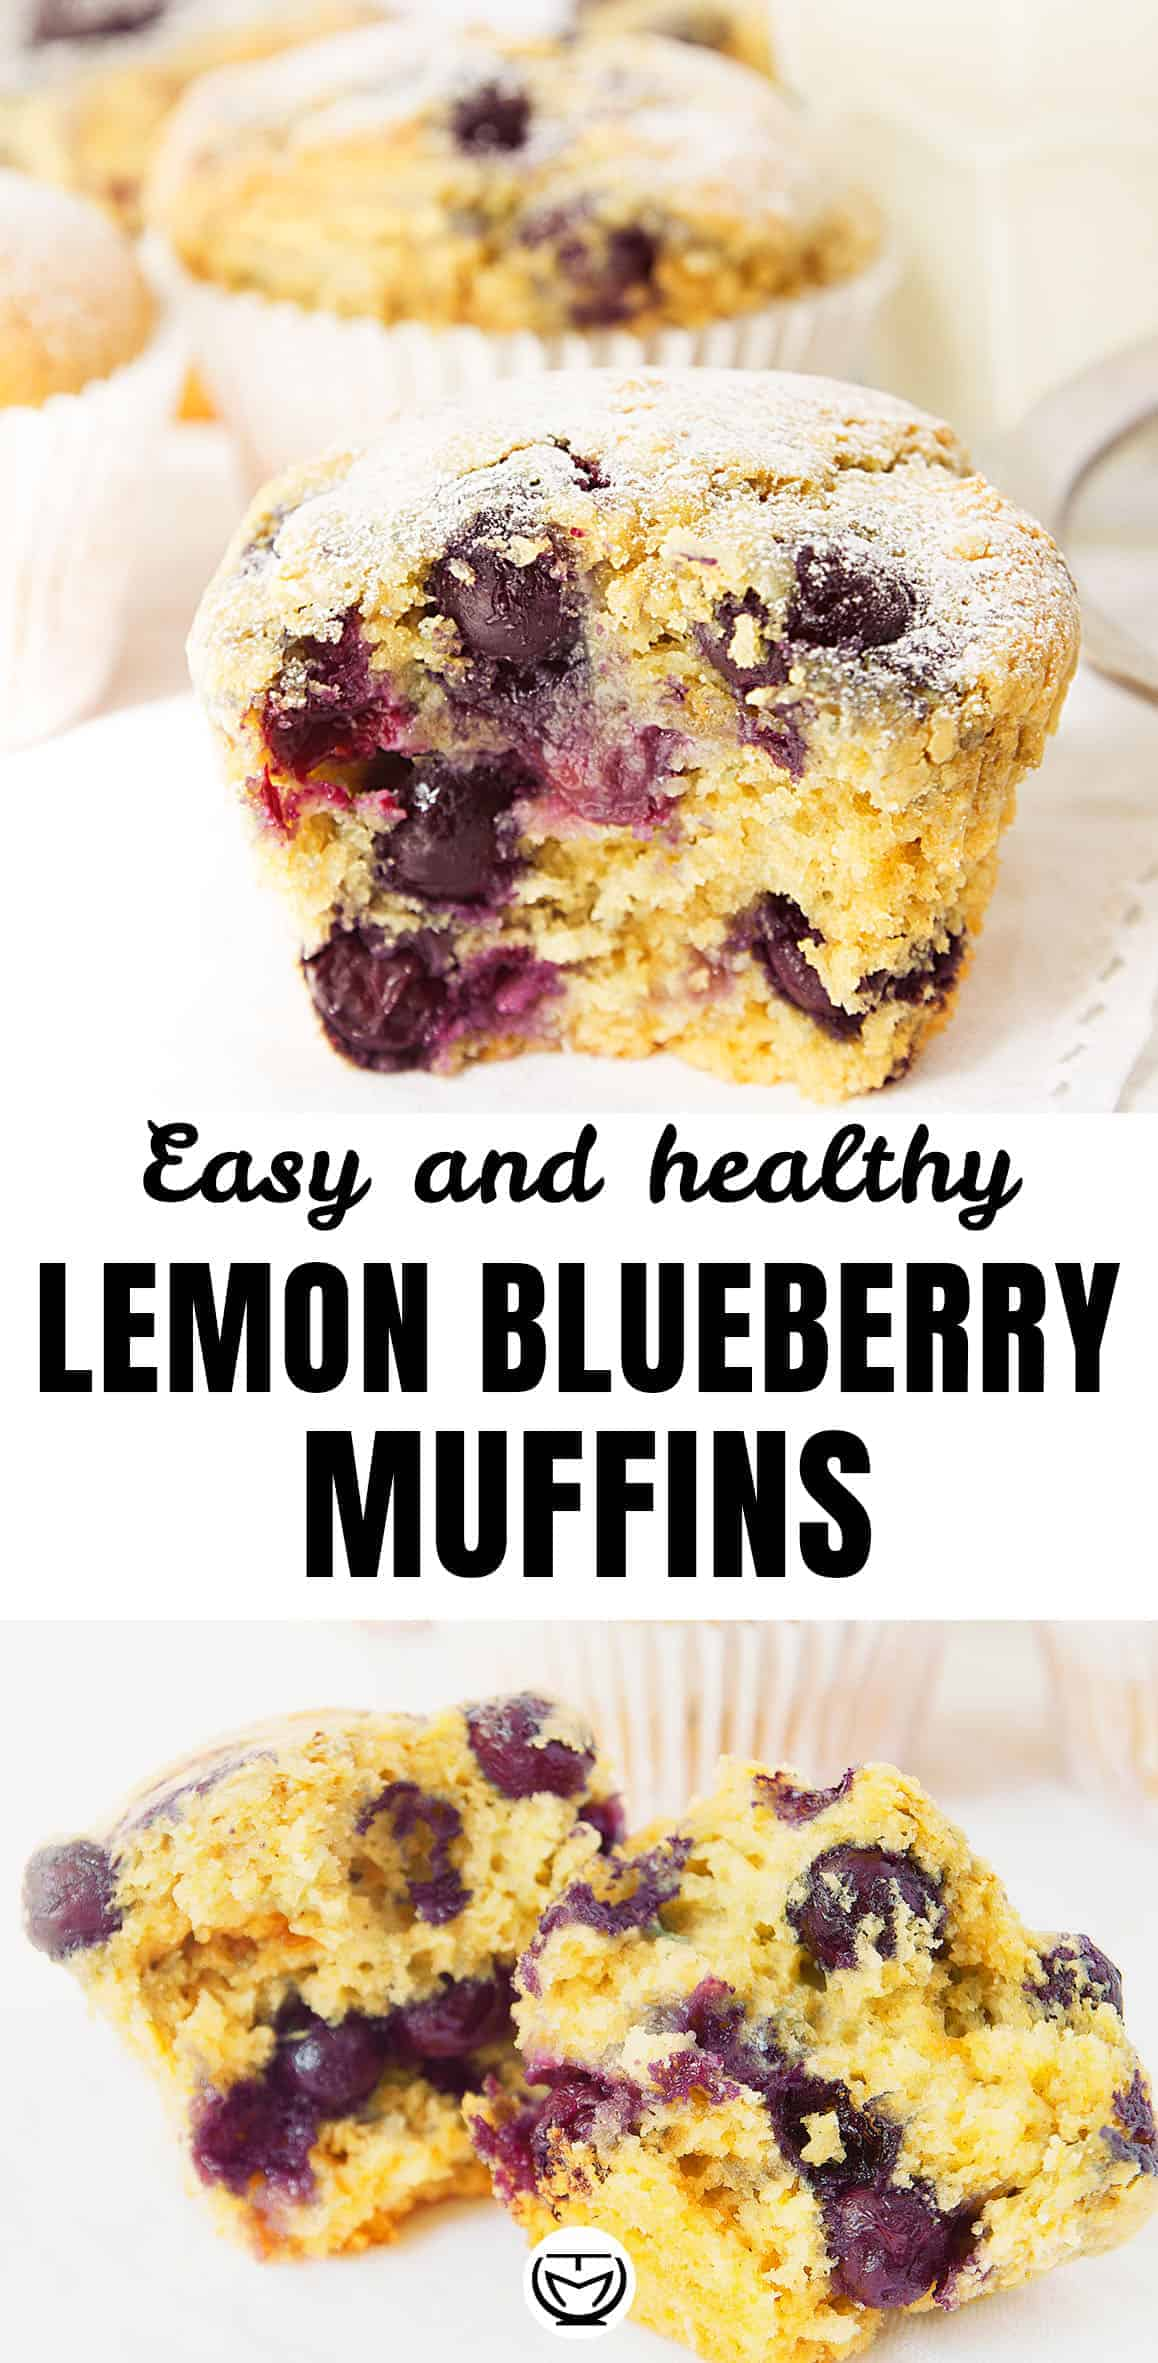 Easy, healthy and delicious lemon blueberry muffins.